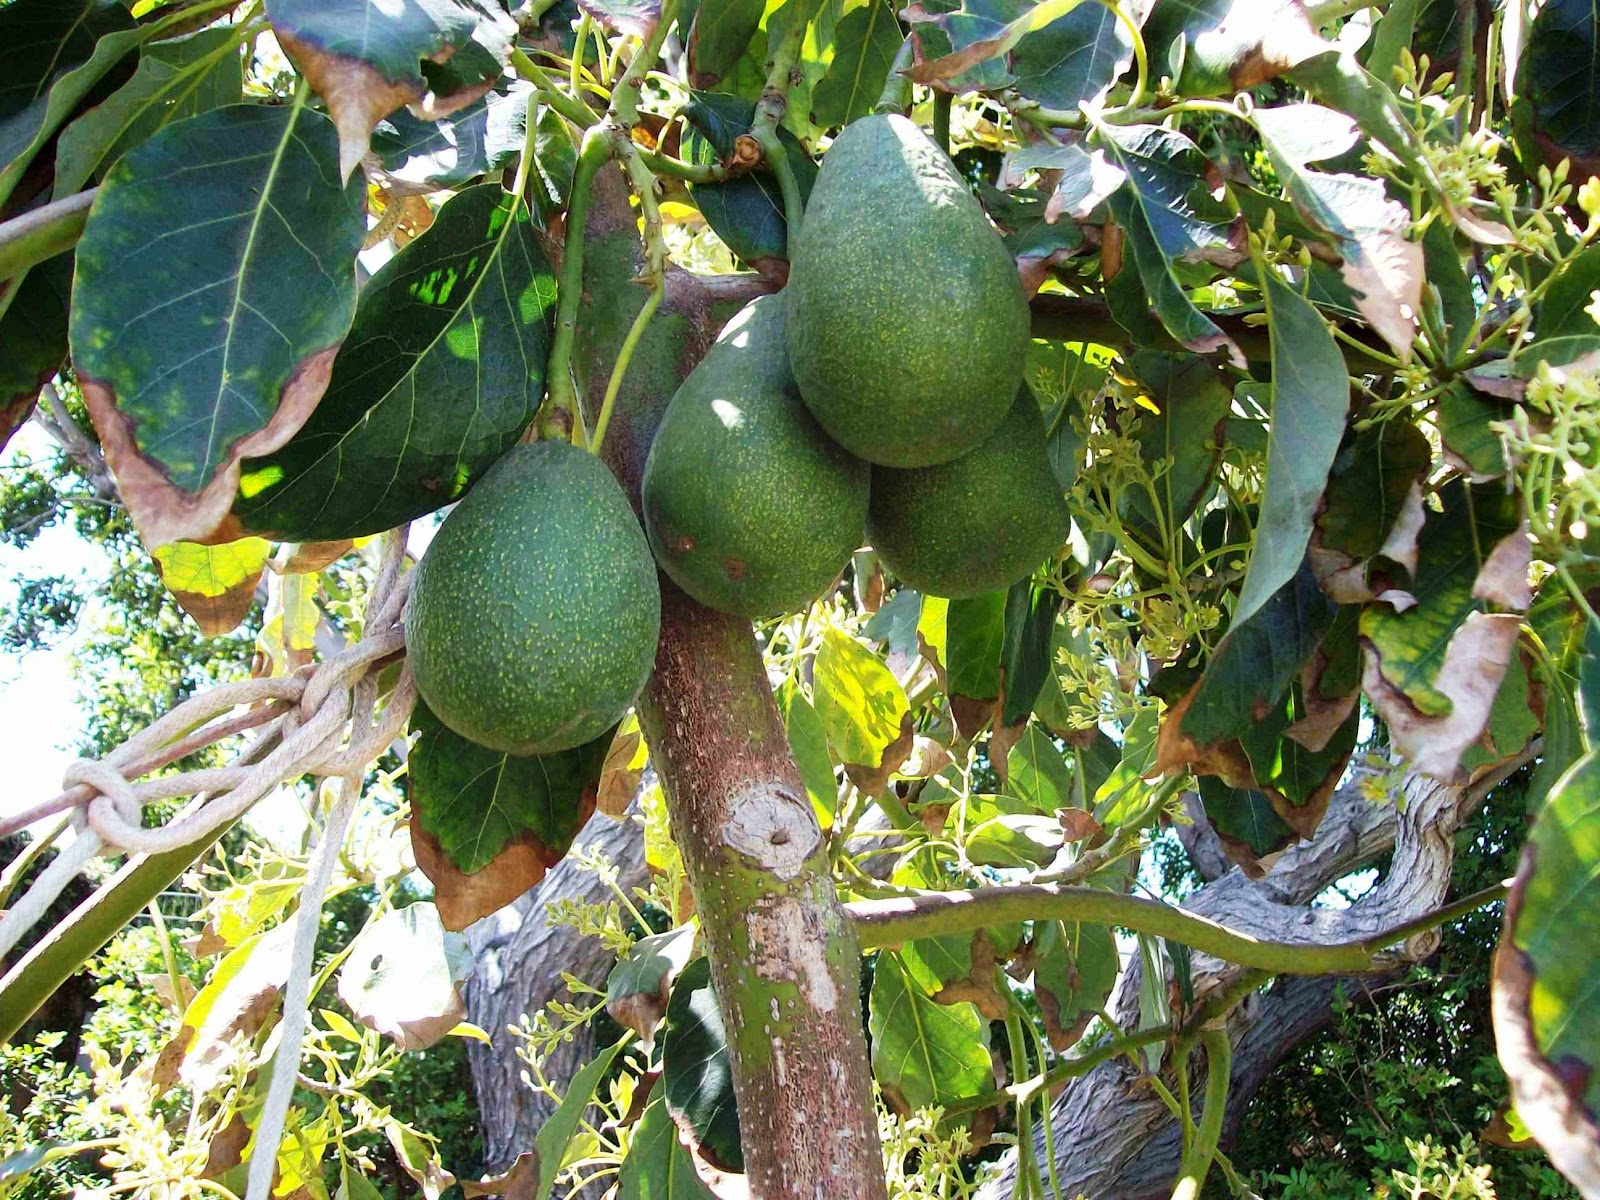 produce clerk the produce clerks handbook by rick chong how to handle avocados